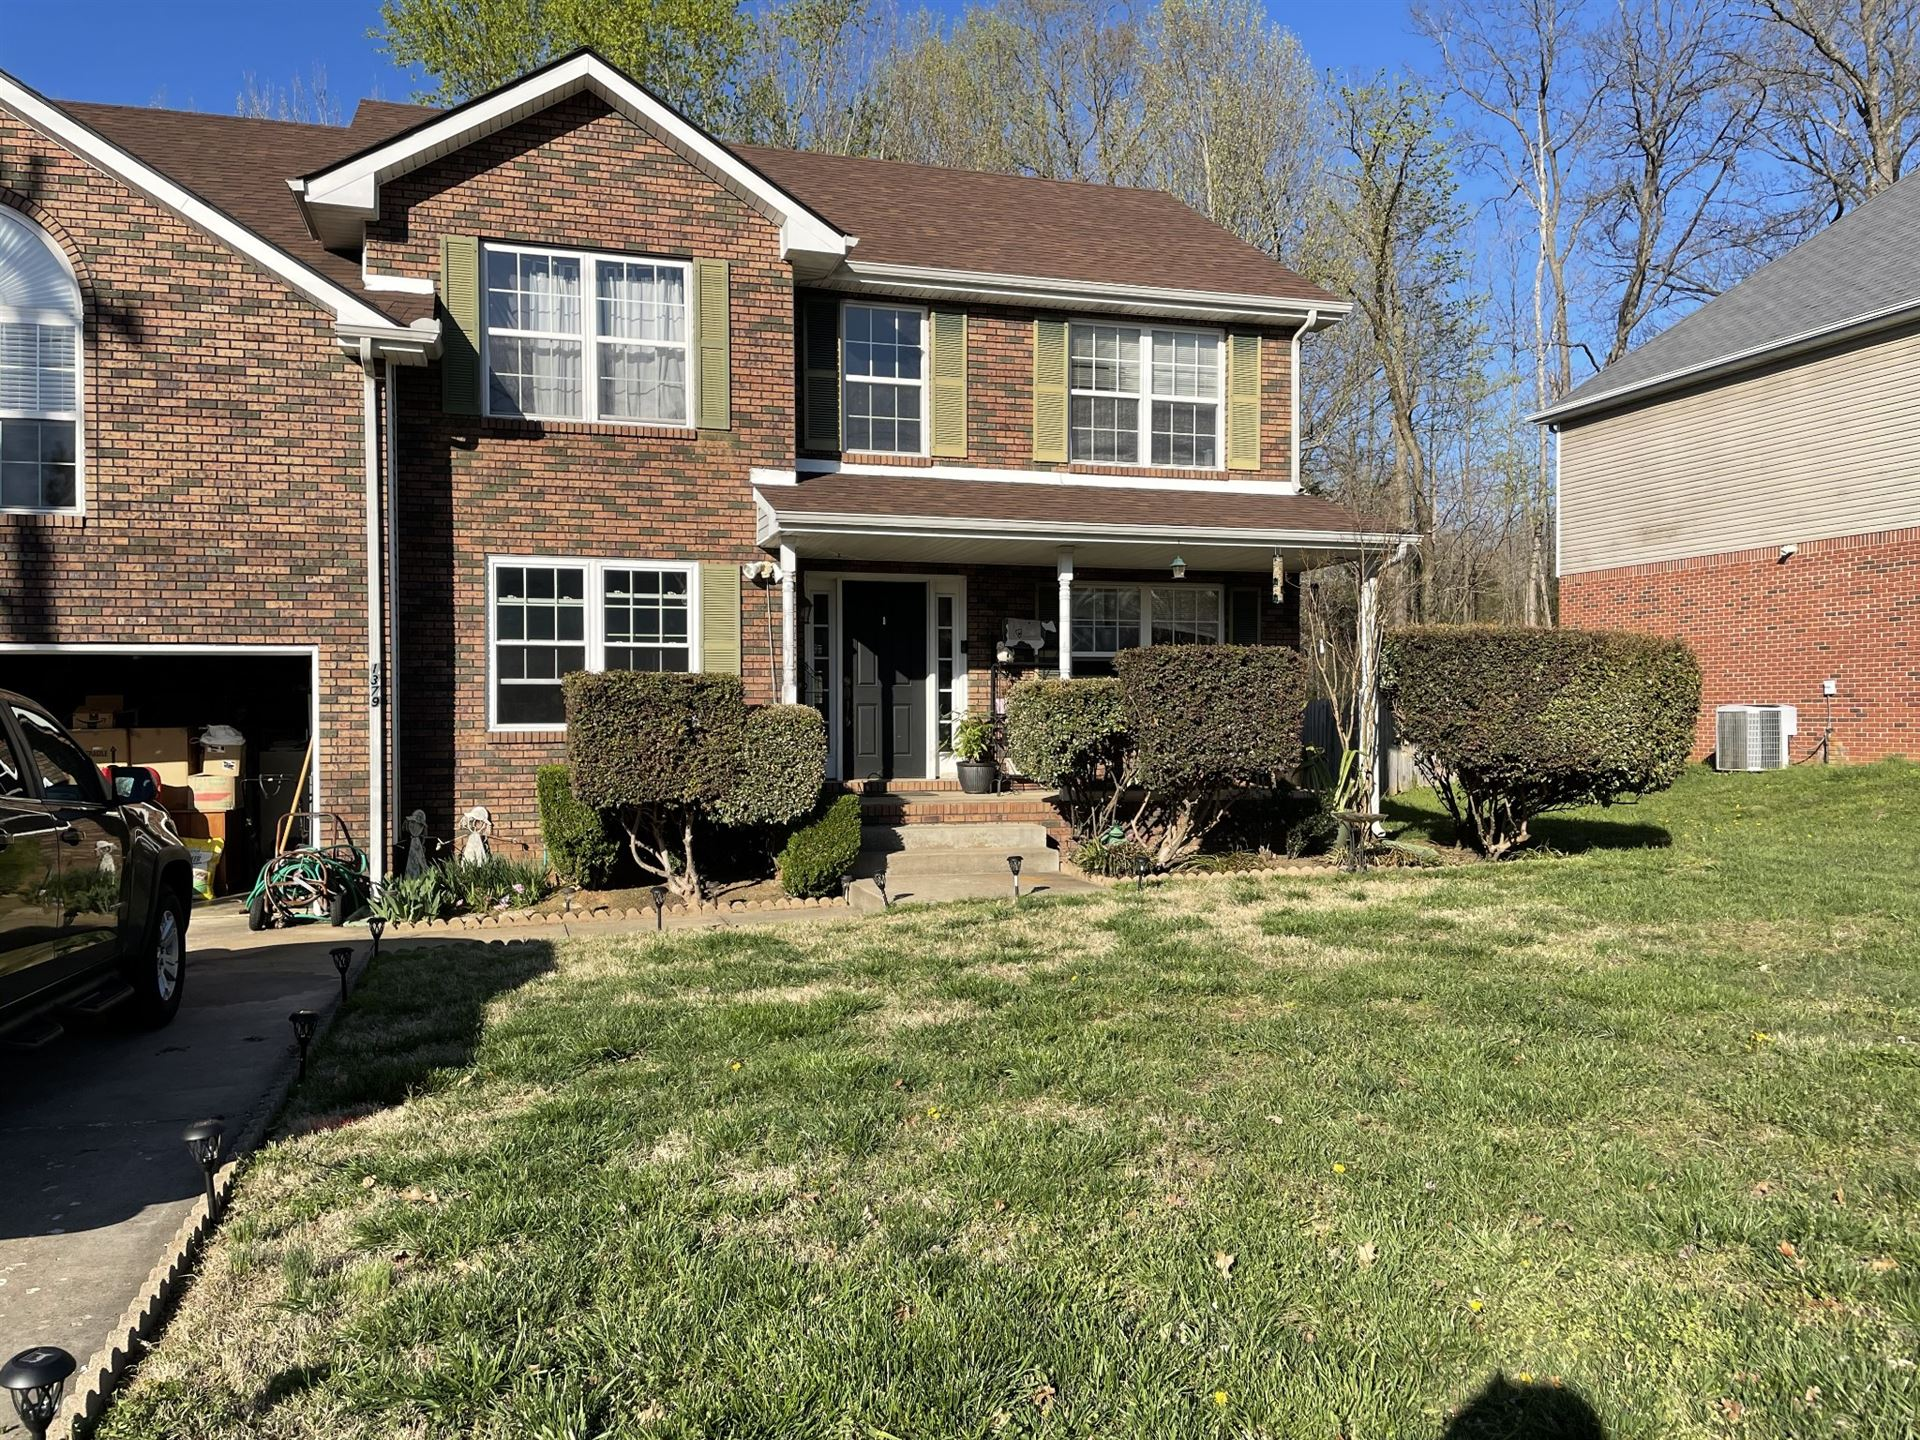 1379 Mountain Way, Clarksville, TN 37043 - MLS#: 2240670